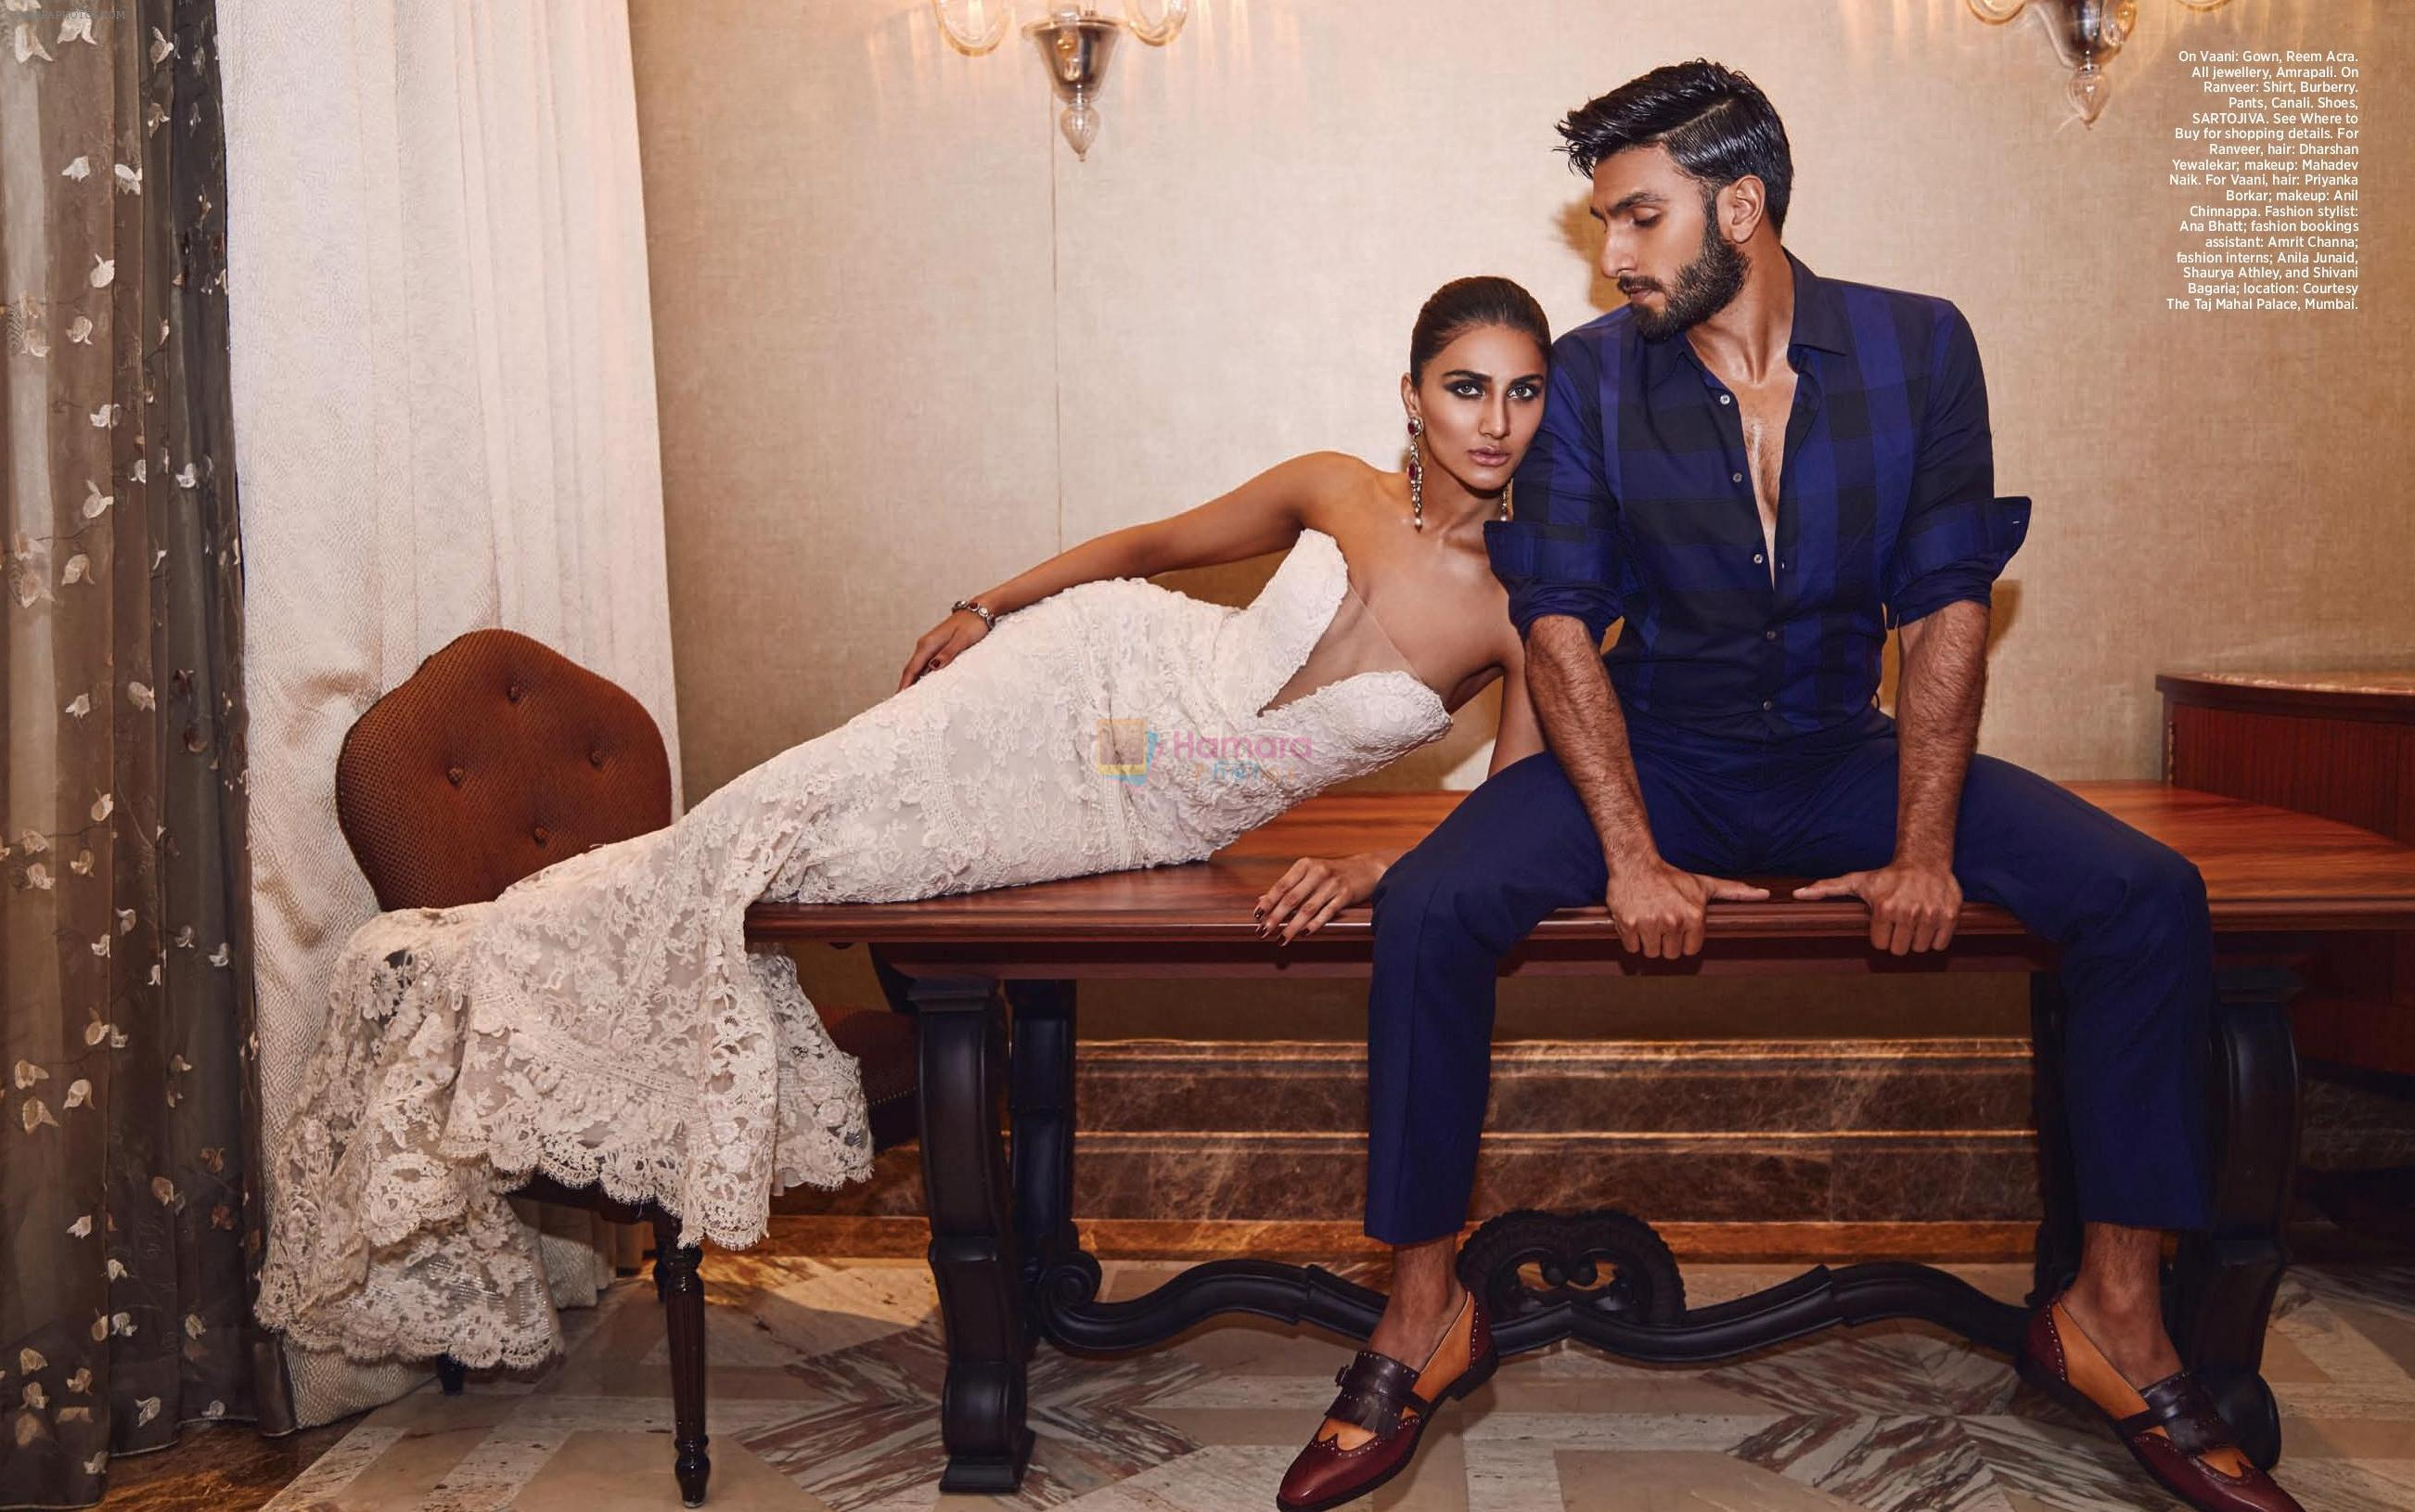 Ranveer Singh and Vaani Kapoor on the cover of Harper's Bazaar Bride, Oct. issue